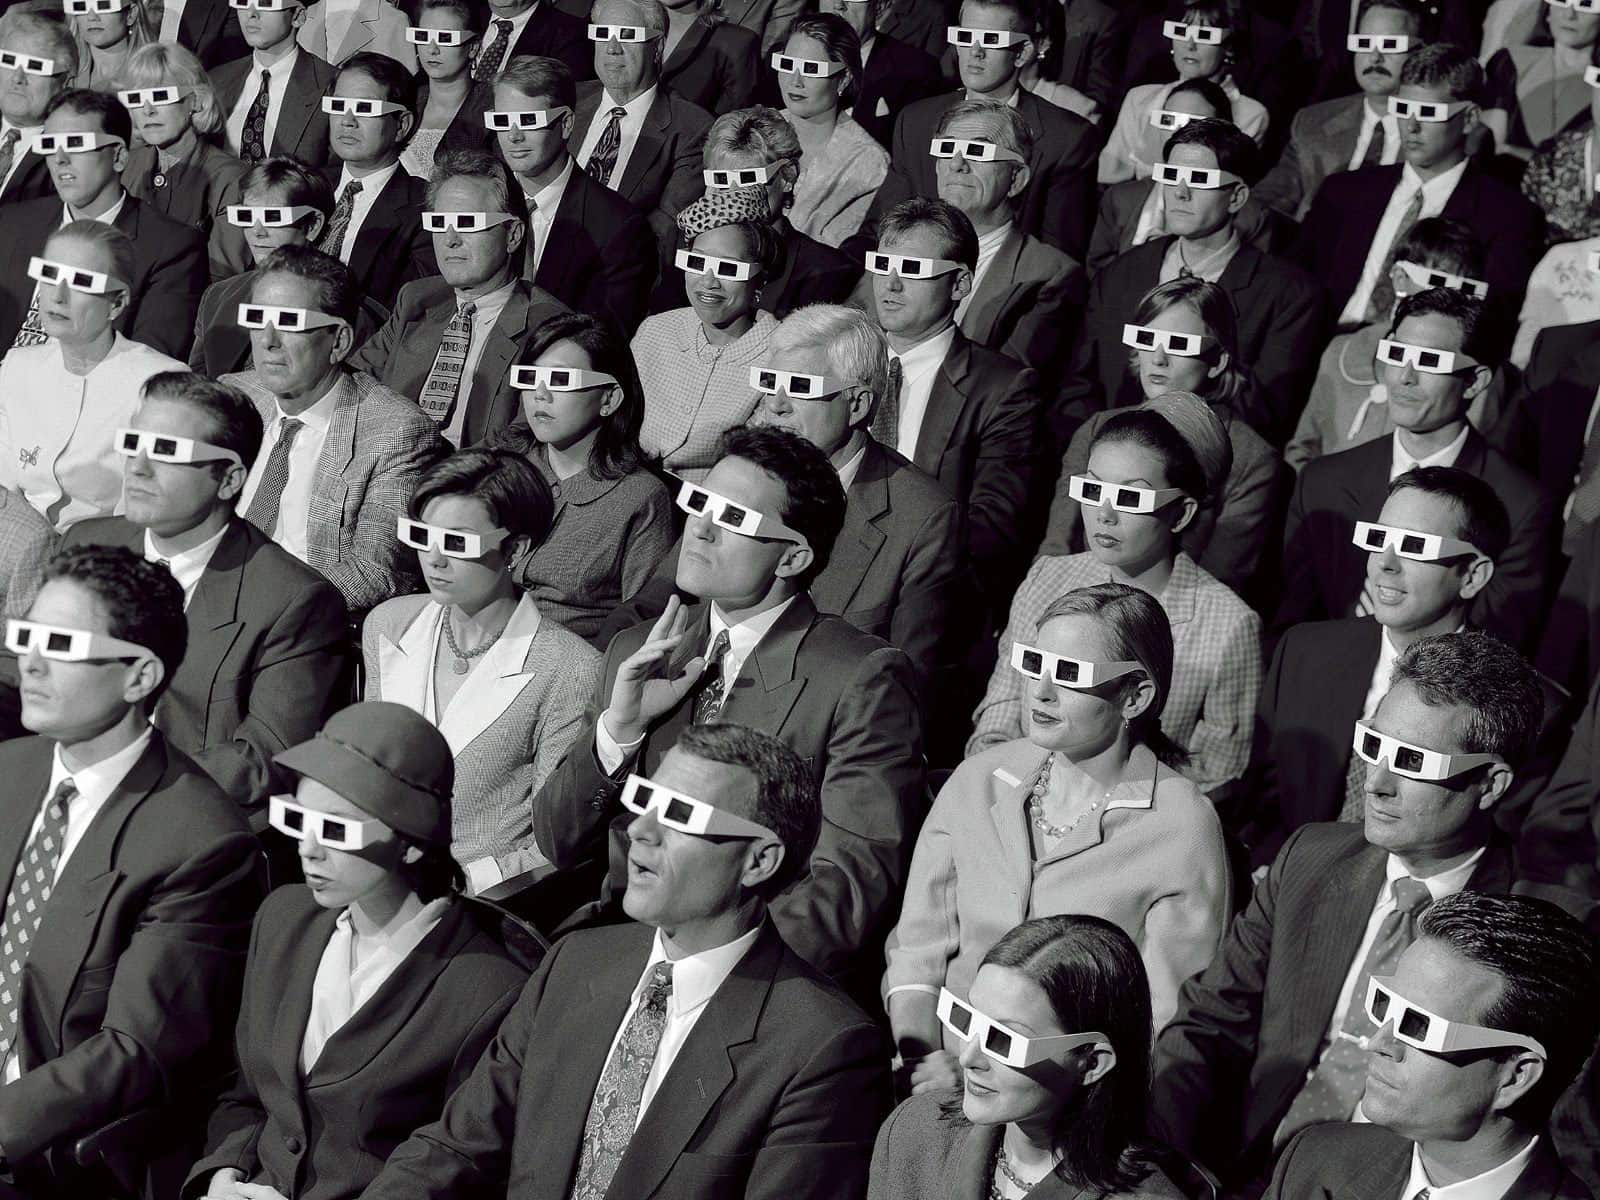 Public Domain Ideas for Screenplay making a 3d movie